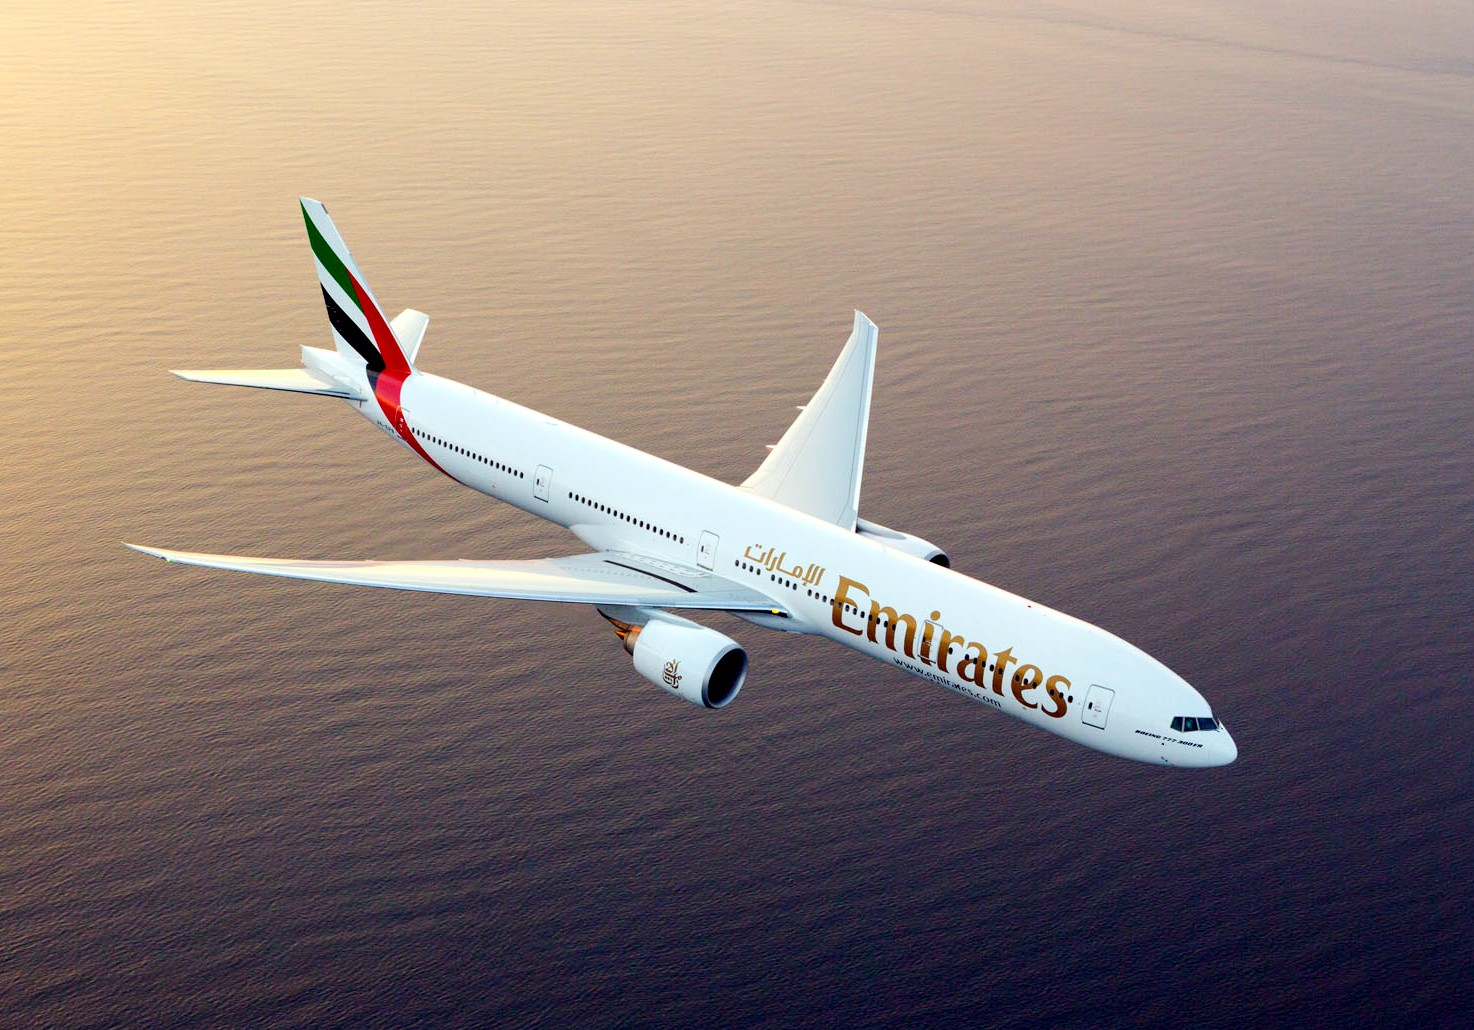 Emirates announces limited passenger flights for the week ahead